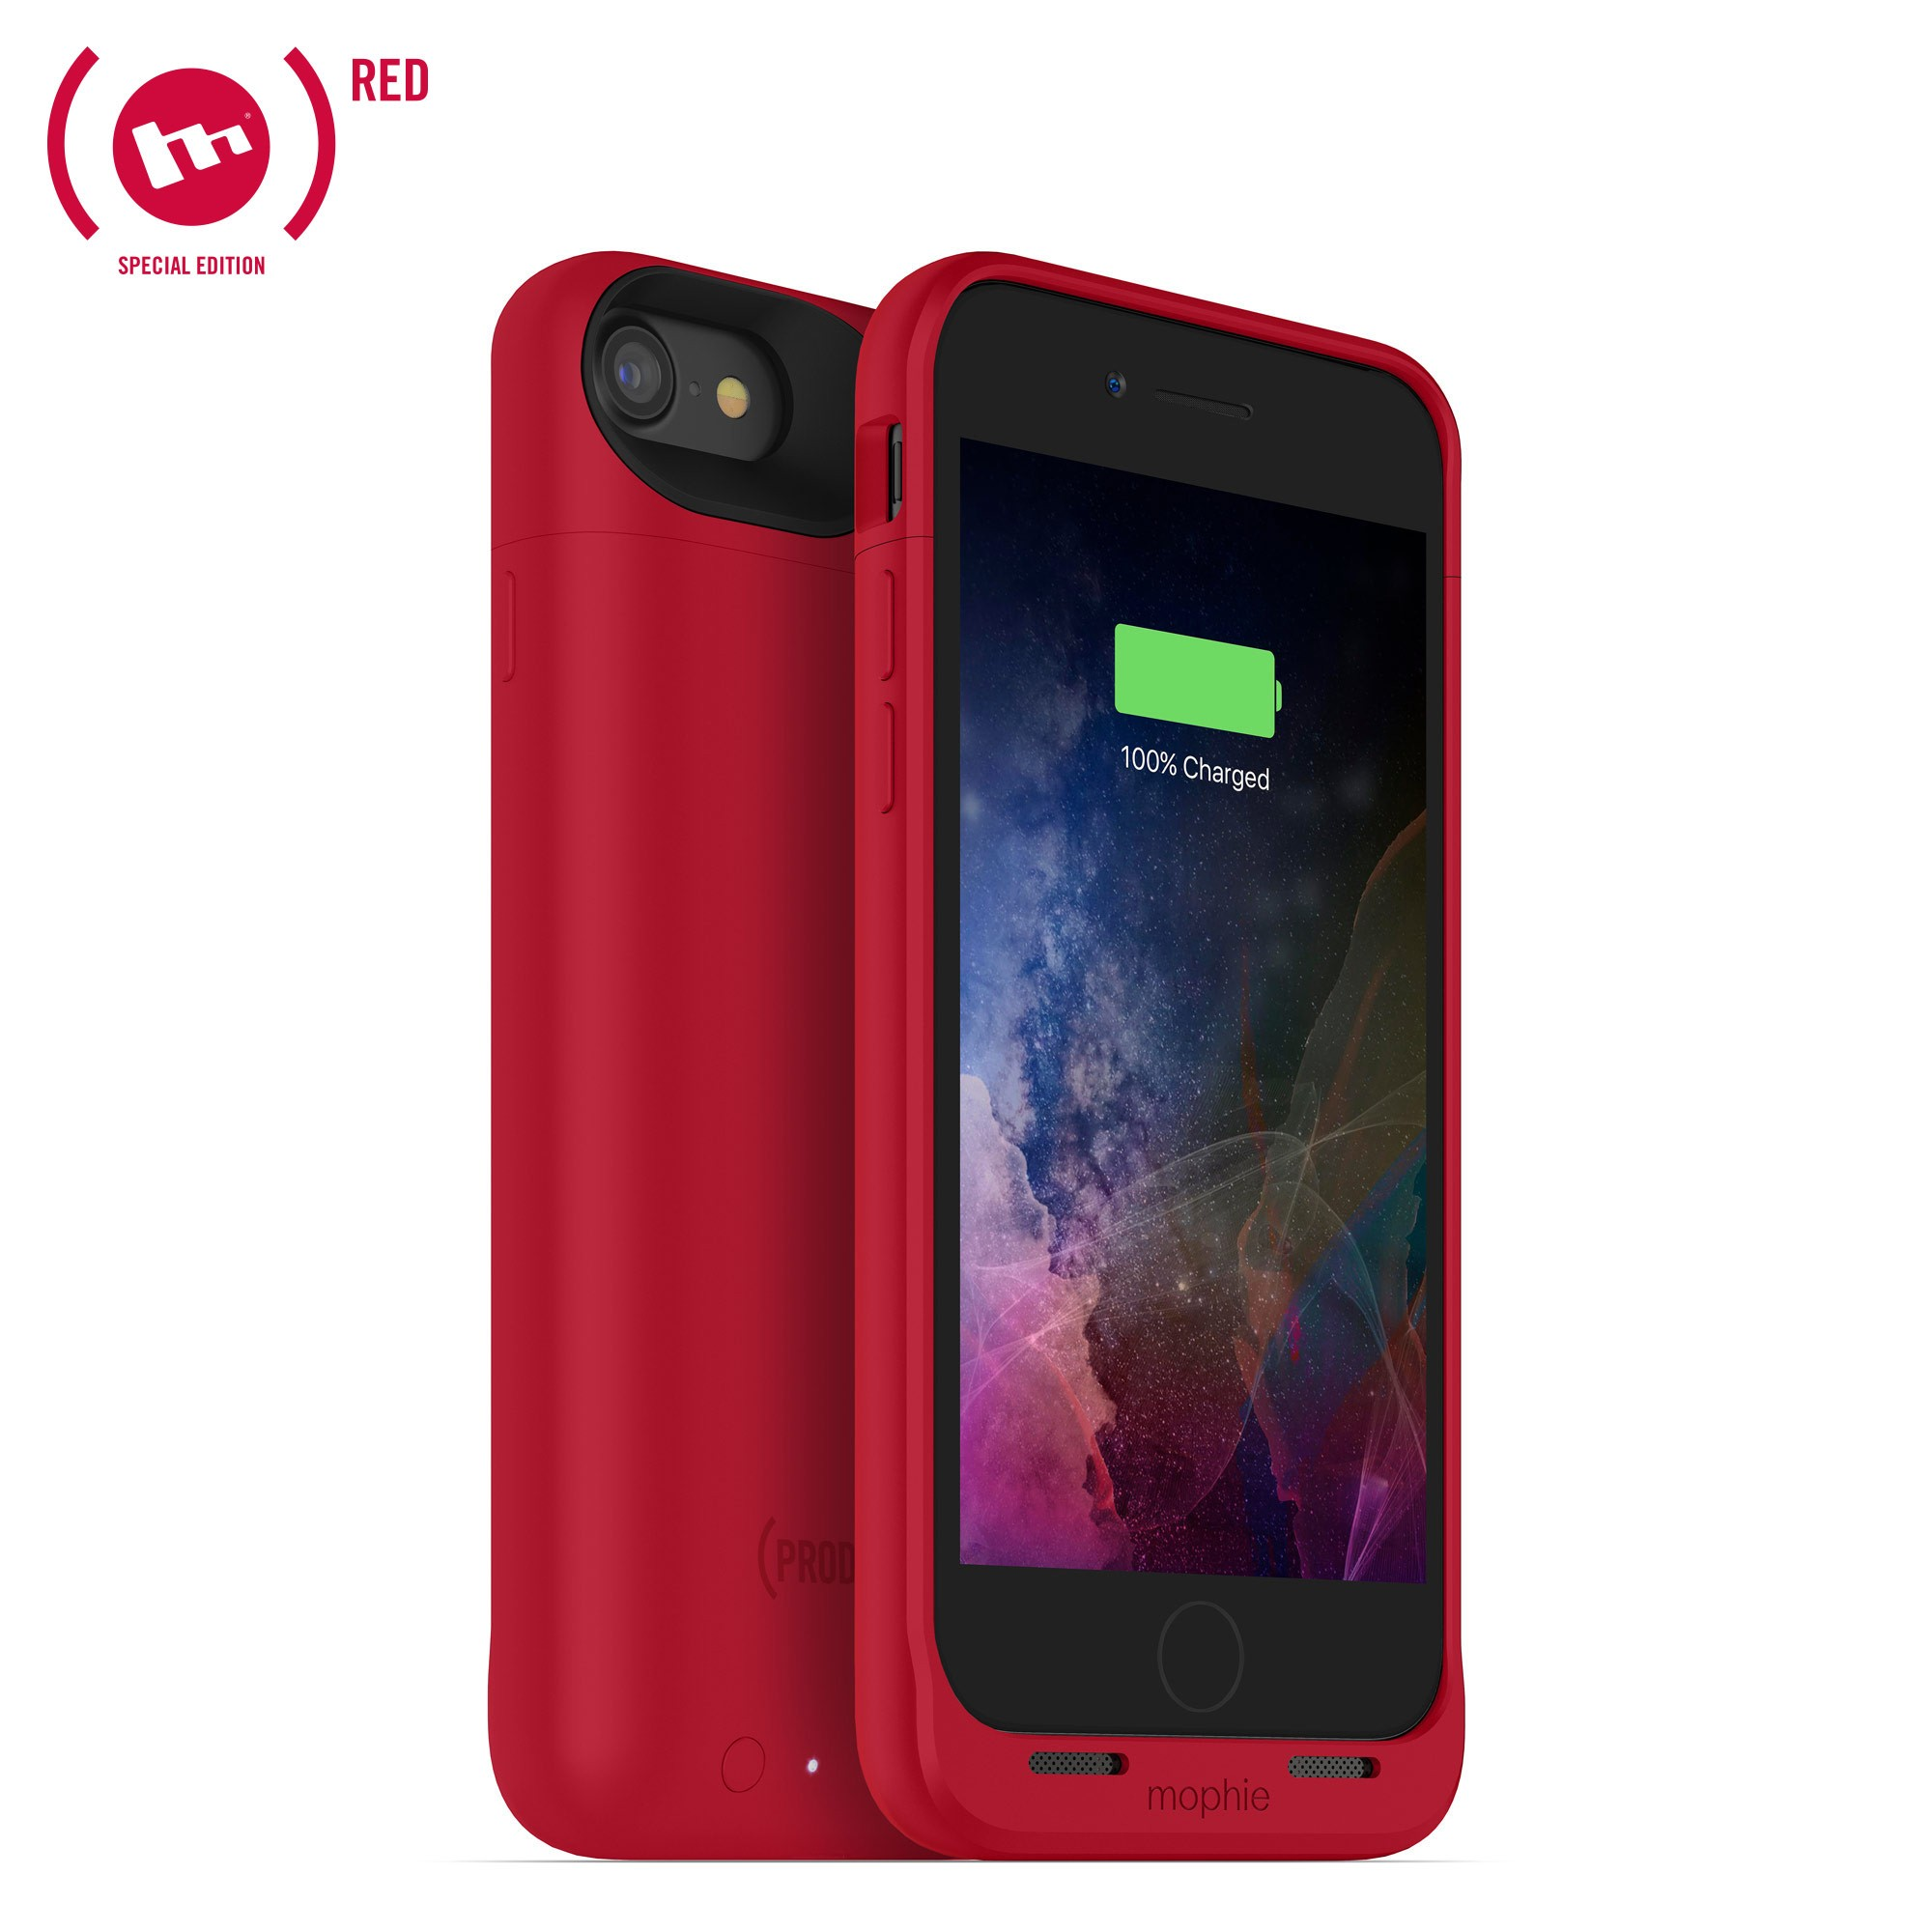 Mophie Juice Pack Air Battery Case for iPhone 7/8 2,520mAh, Red